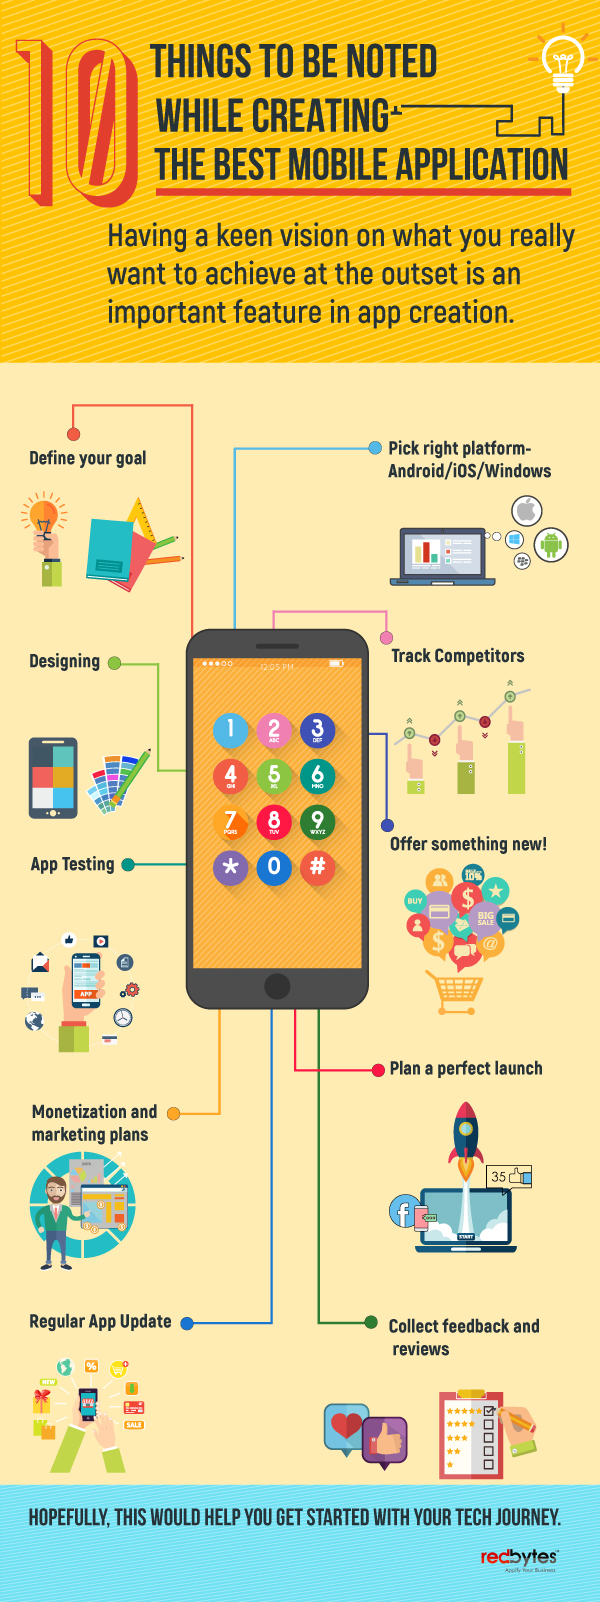 10 Things to be Noted while Creating the Best Mobile Application